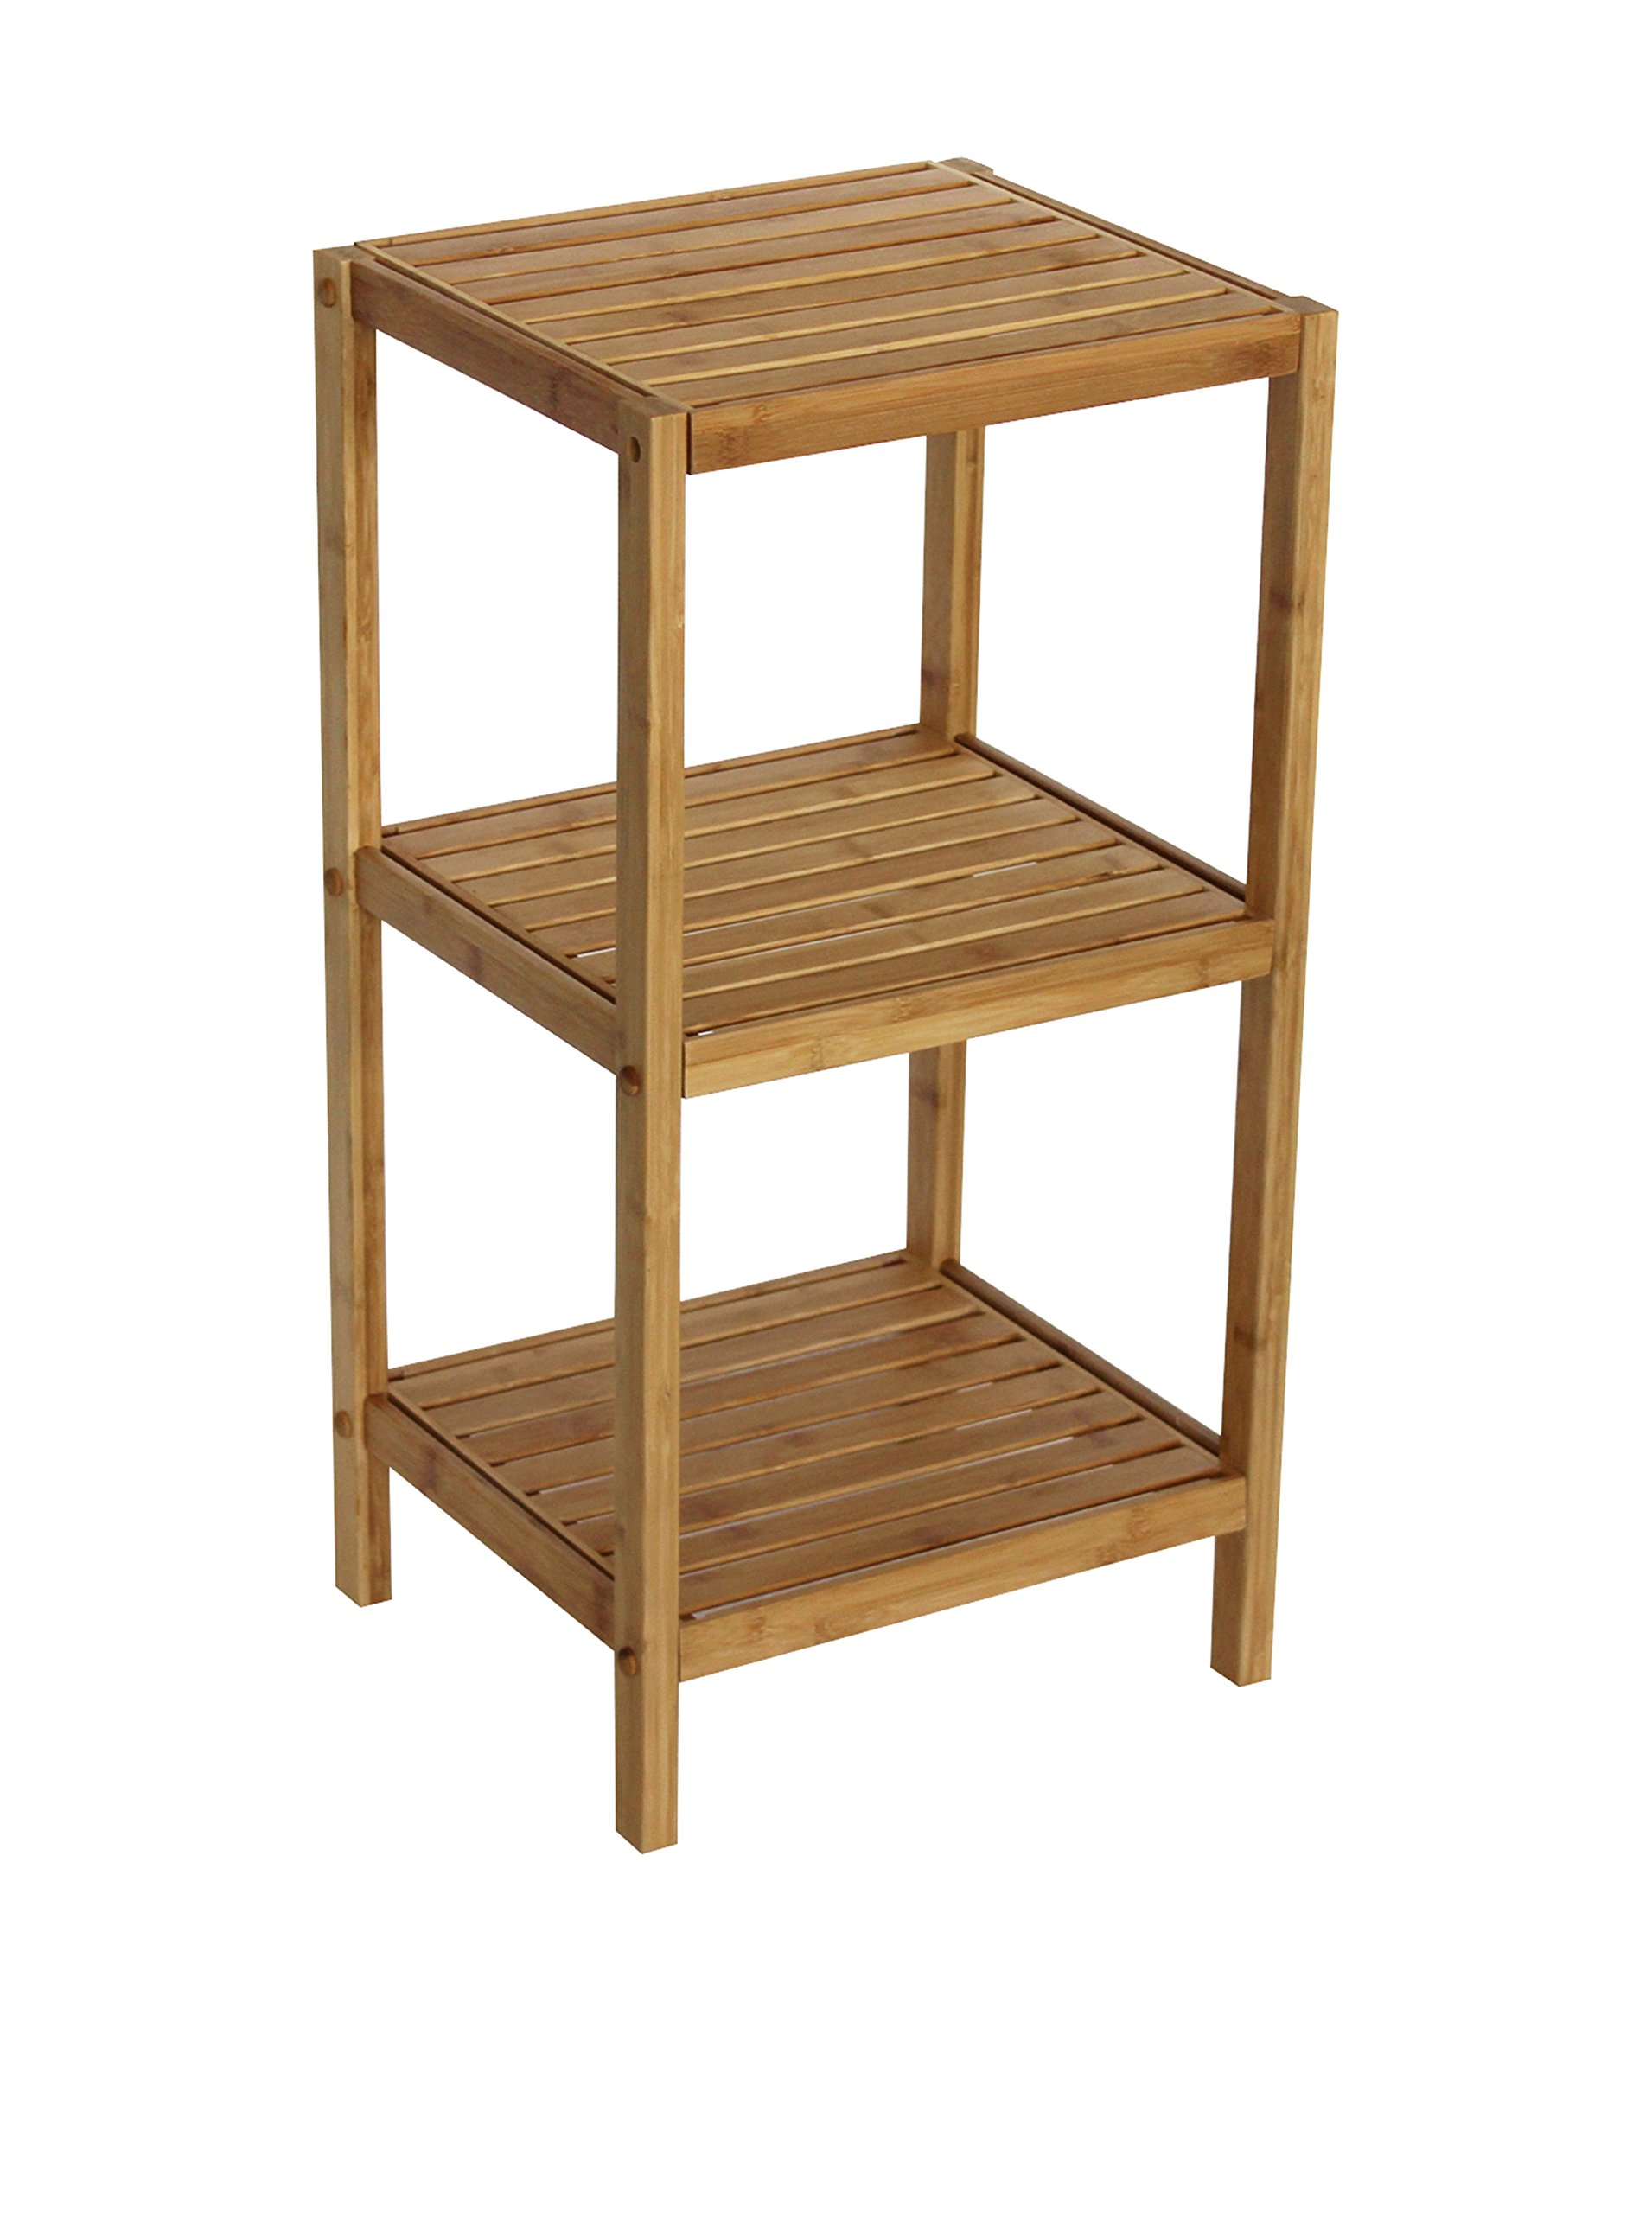 Gallerie Decor Bamboo Spa 3 Shelf Tower